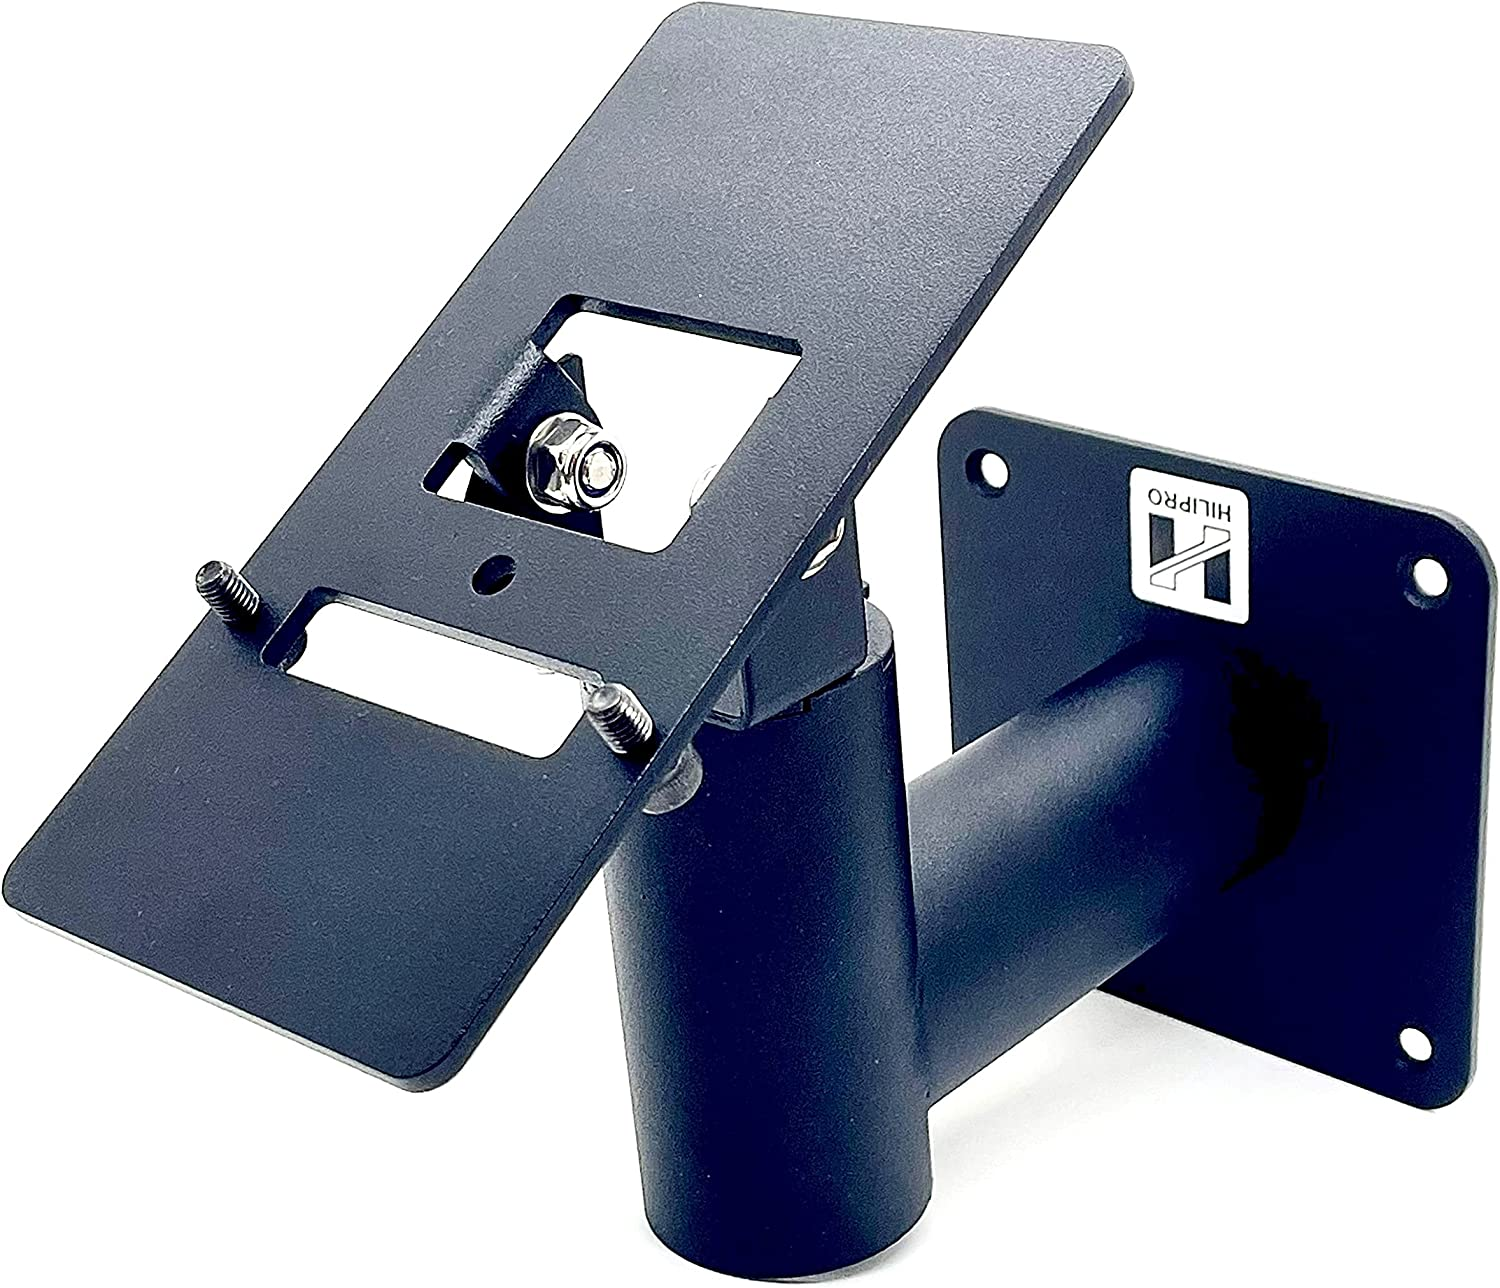 Wall Mount for Pax Over item handling S300 Credit and Terminal Factory outlet Catd - Tilts Swivels